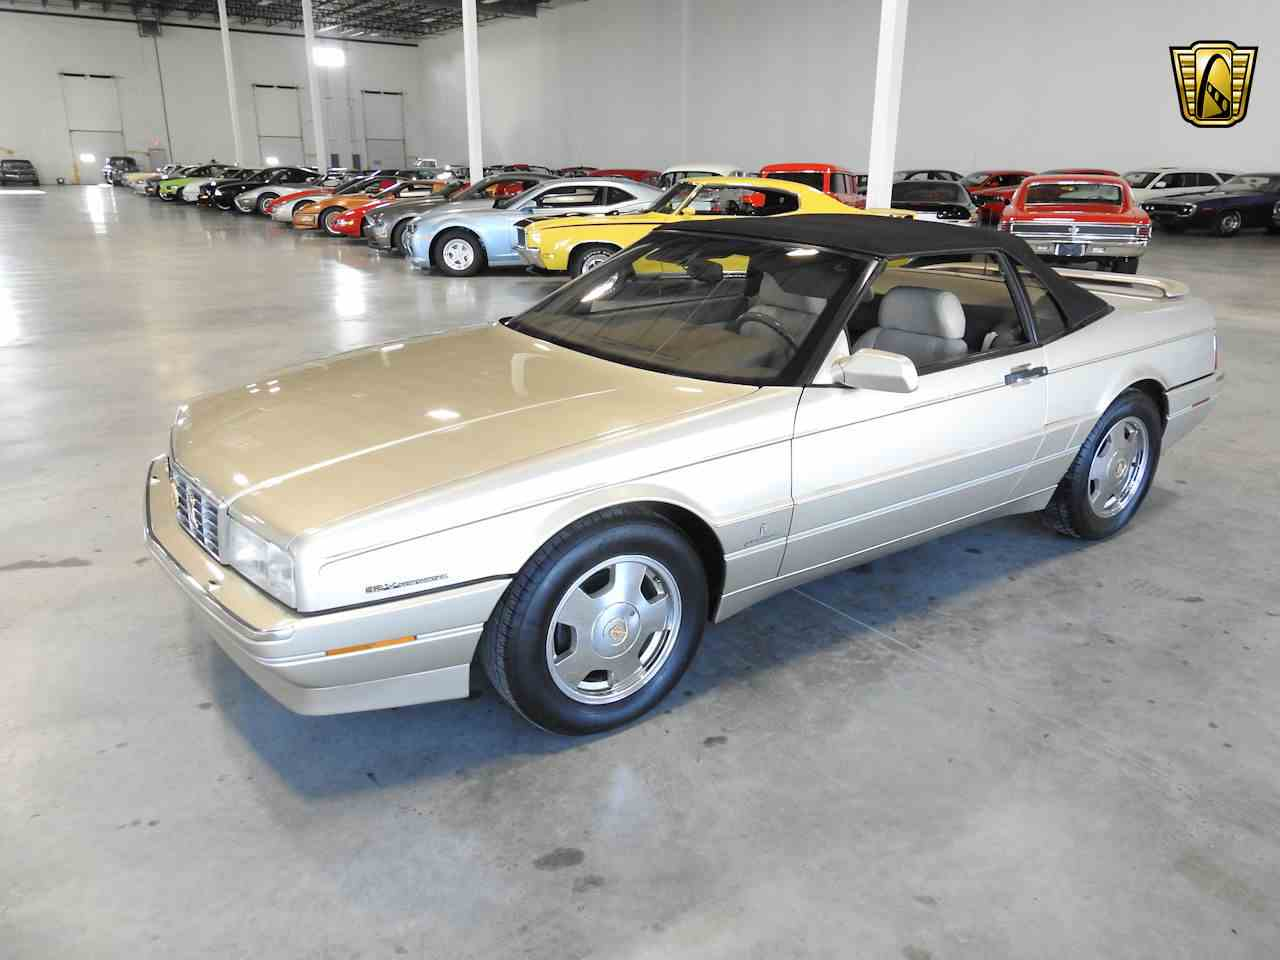 Large Picture of 1993 Cadillac Allante located in Wisconsin - $8,995.00 Offered by Gateway Classic Cars - Milwaukee - MDHG